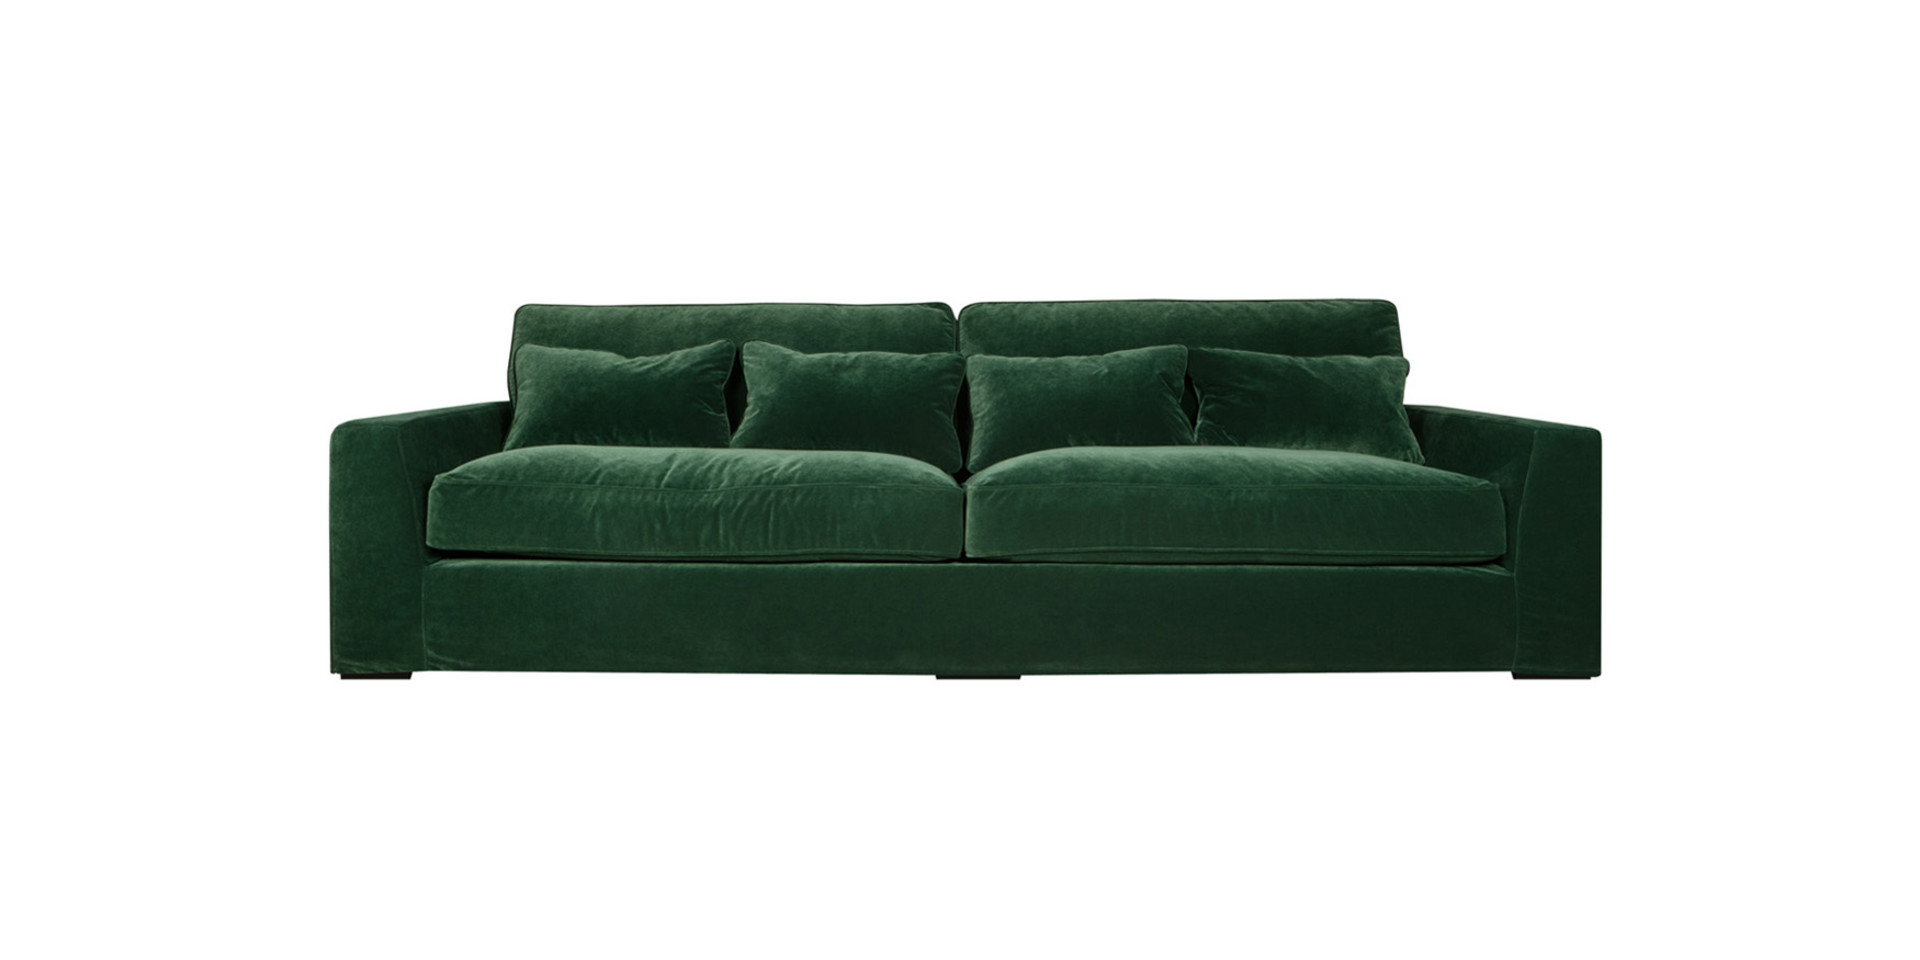 sits-newyork-canape-4seater_classic_velvet15_green_1